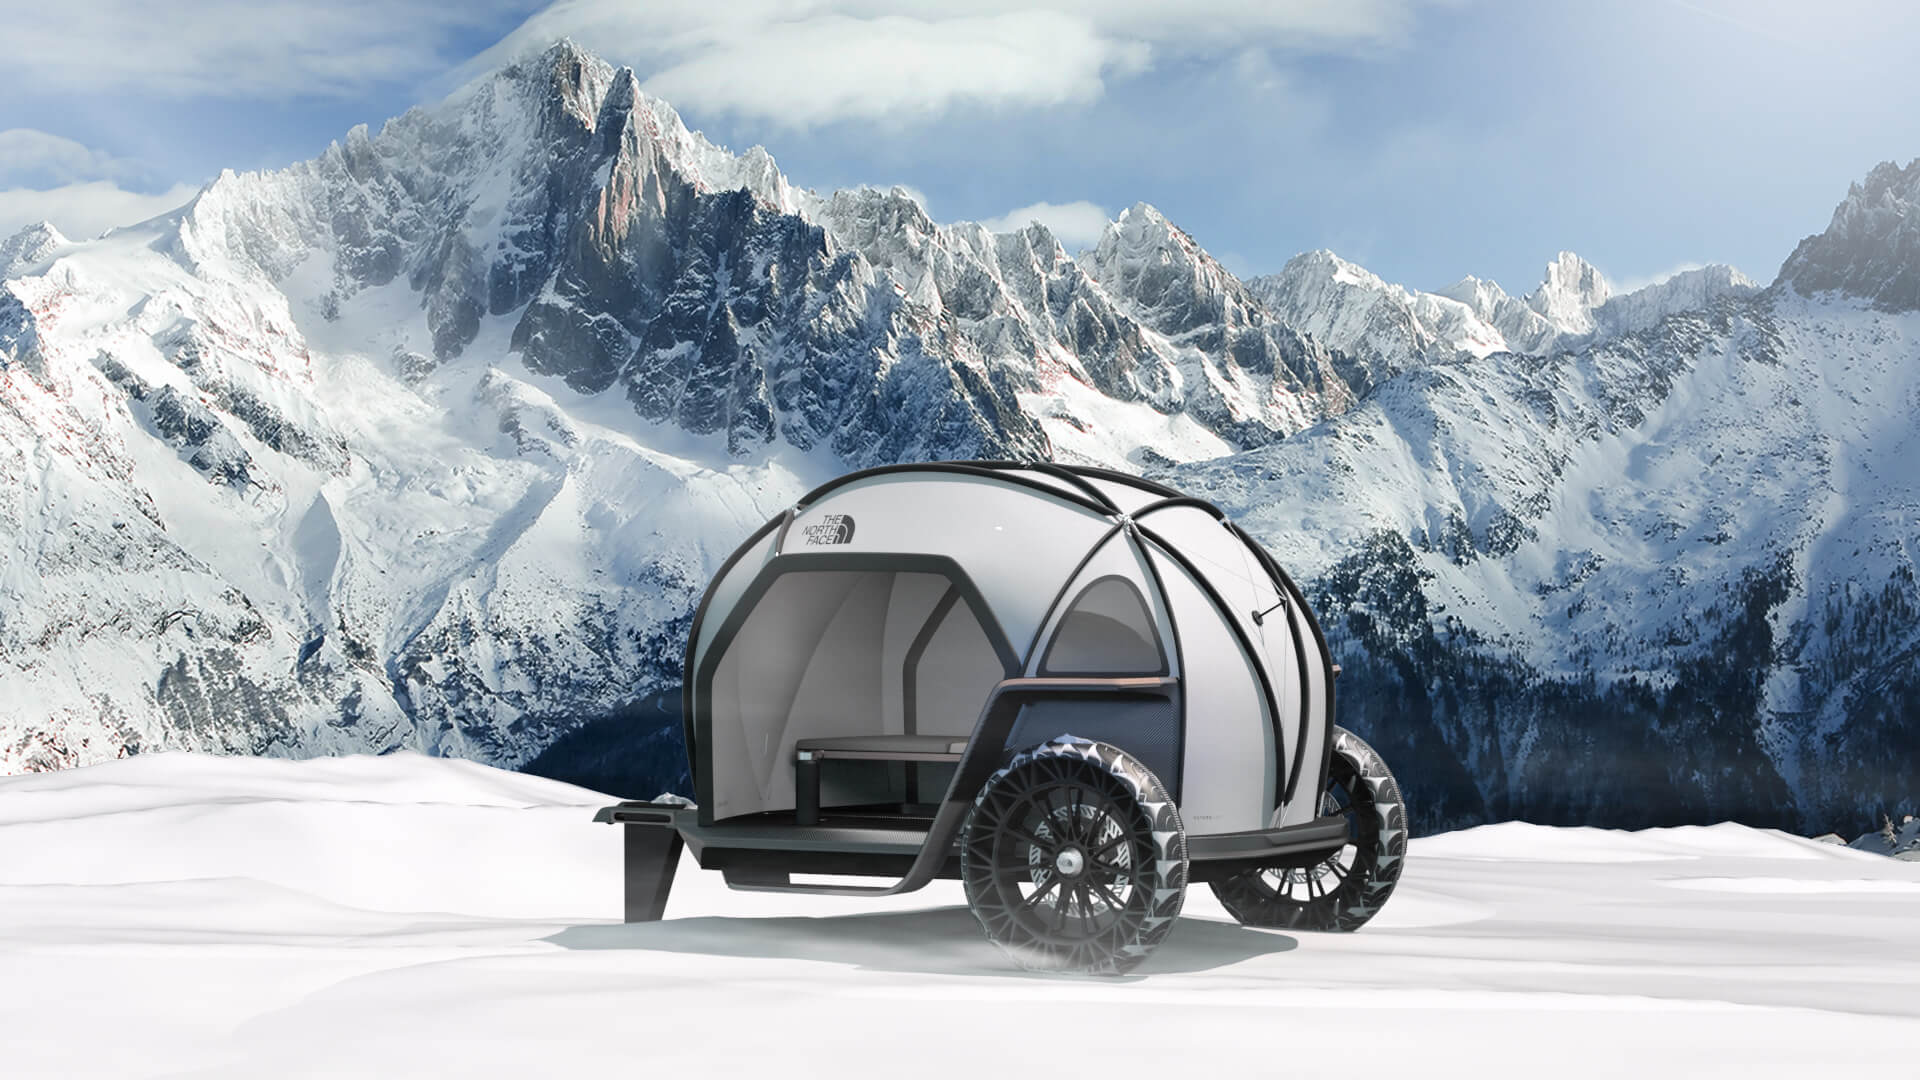 futurelight - CES 2019: The North Face e BMW apresentam barraca de camping futurista